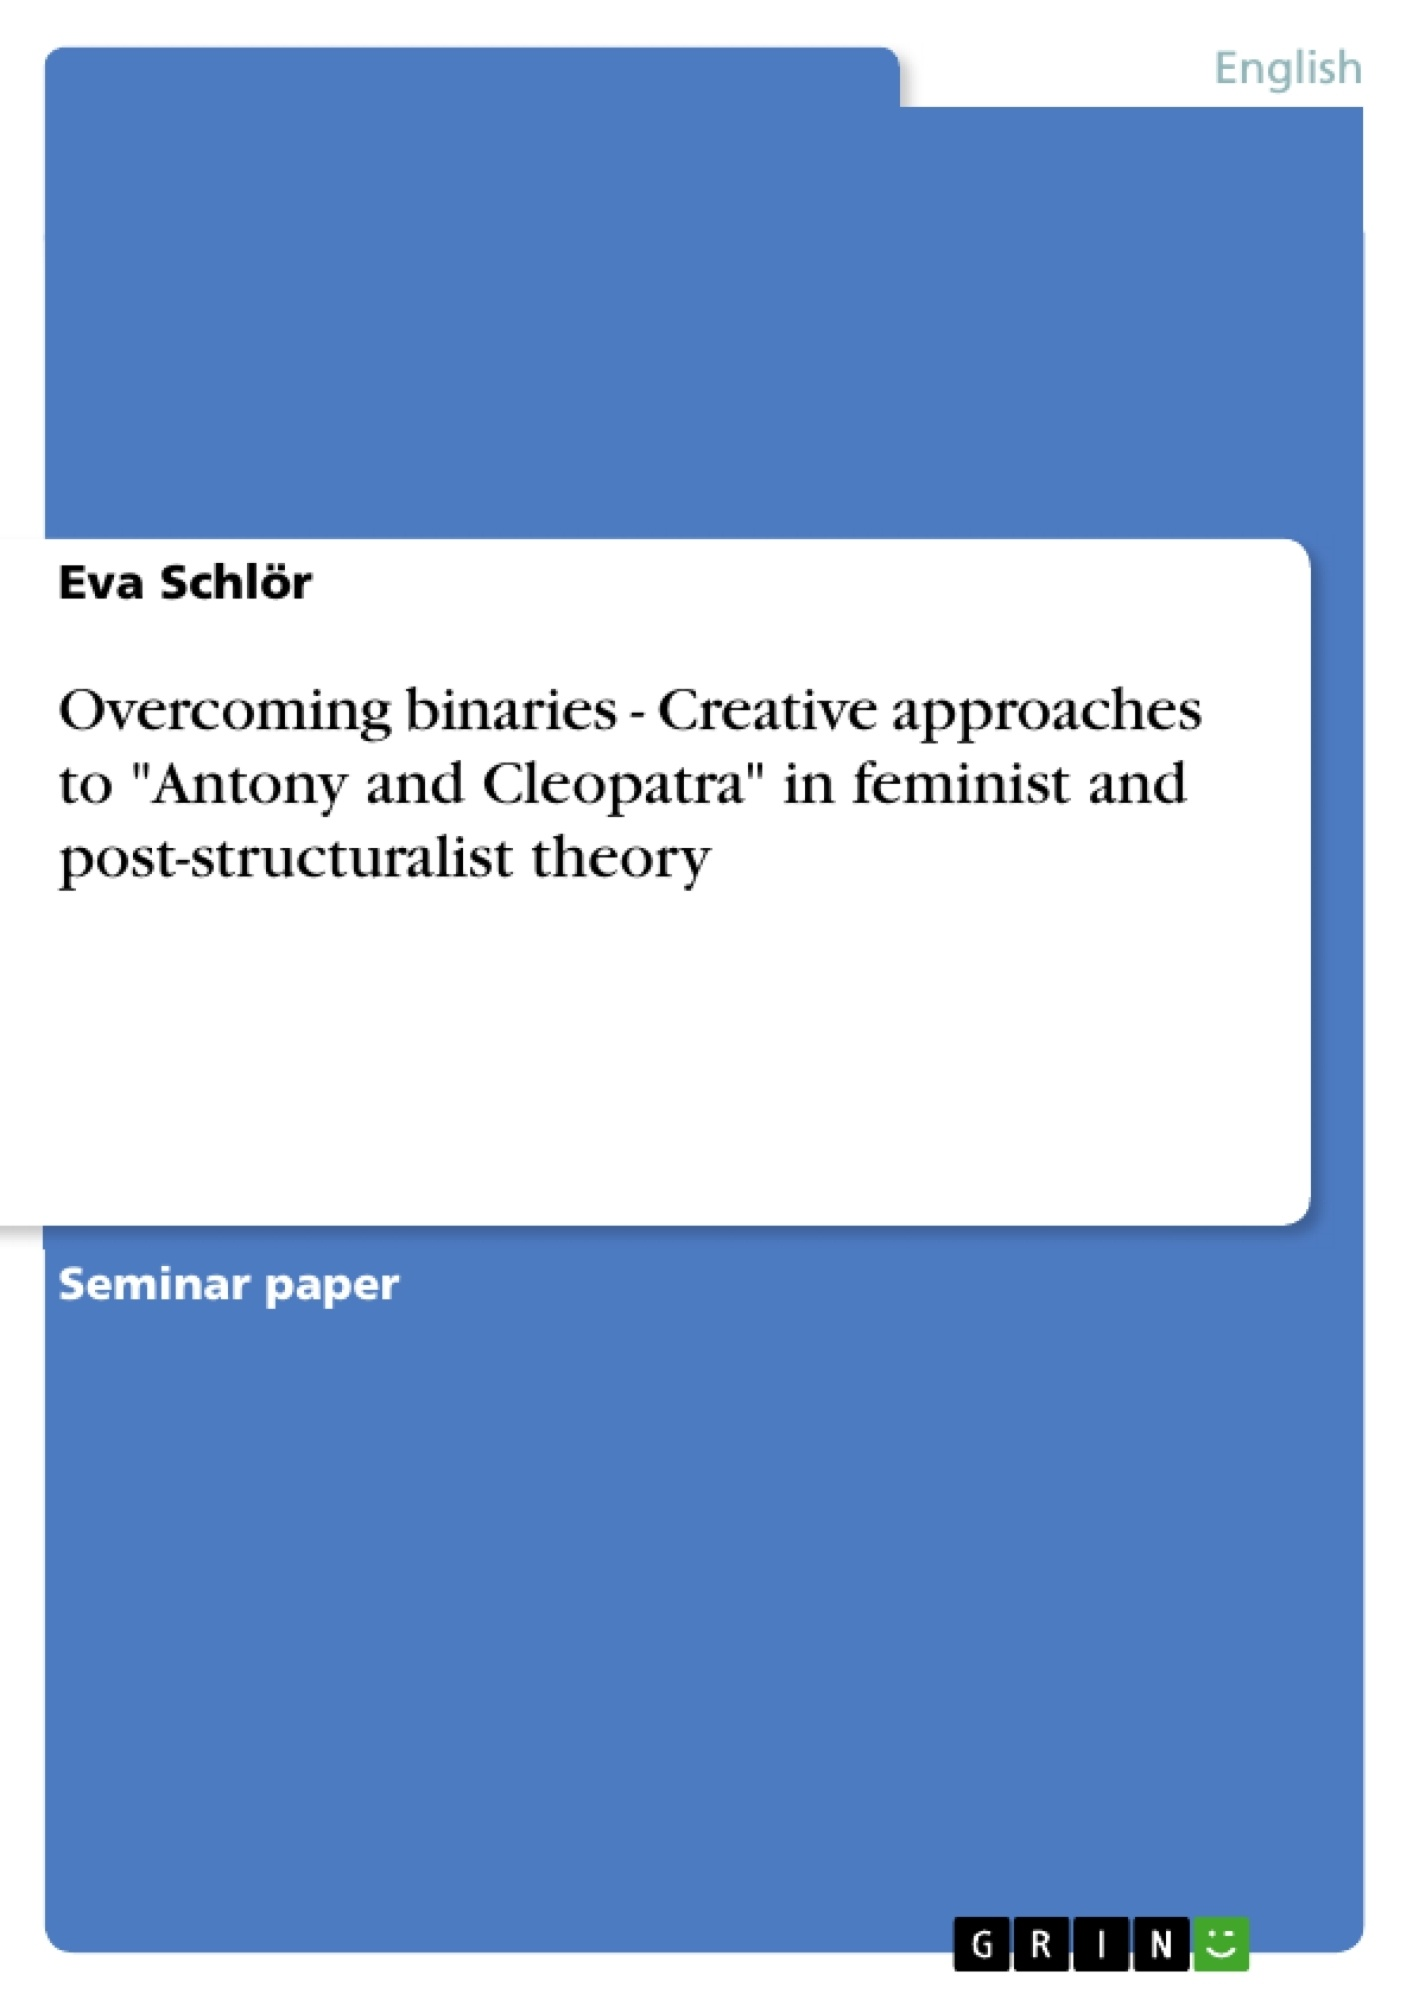 """Title: Overcoming binaries - Creative approaches to """"Antony and Cleopatra"""" in feminist and post-structuralist theory"""